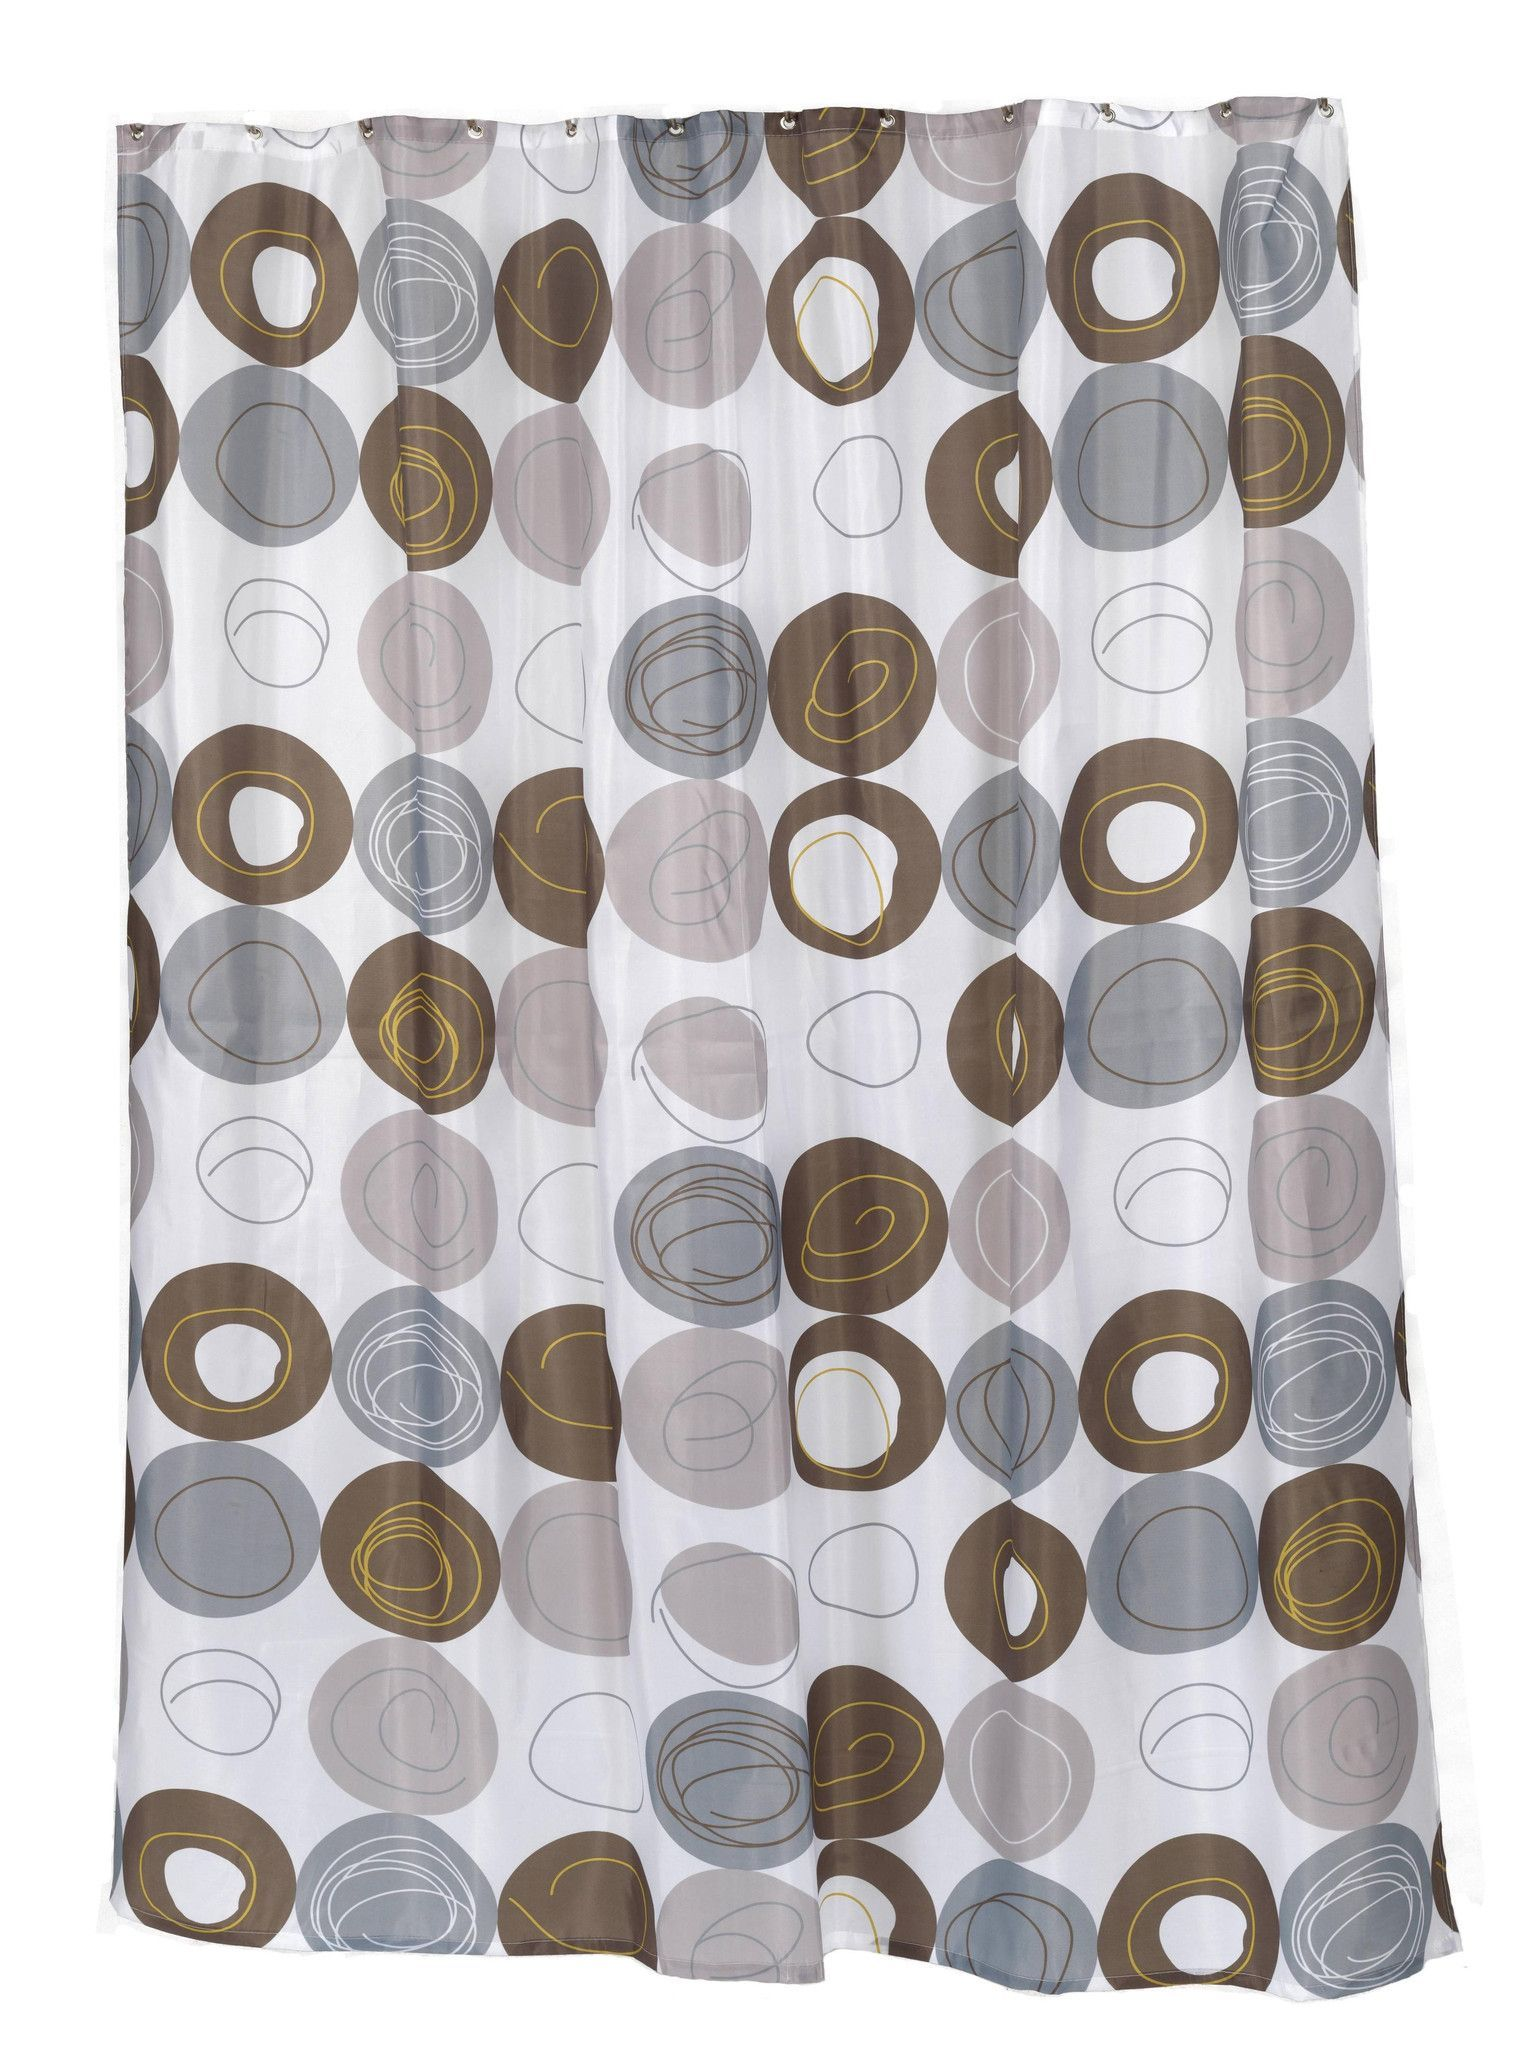 Carnation Home Fashions Polyester Fabric Print 70 By 84 Inch Shower Curtain X Long Madison Multi Earthtone Colors